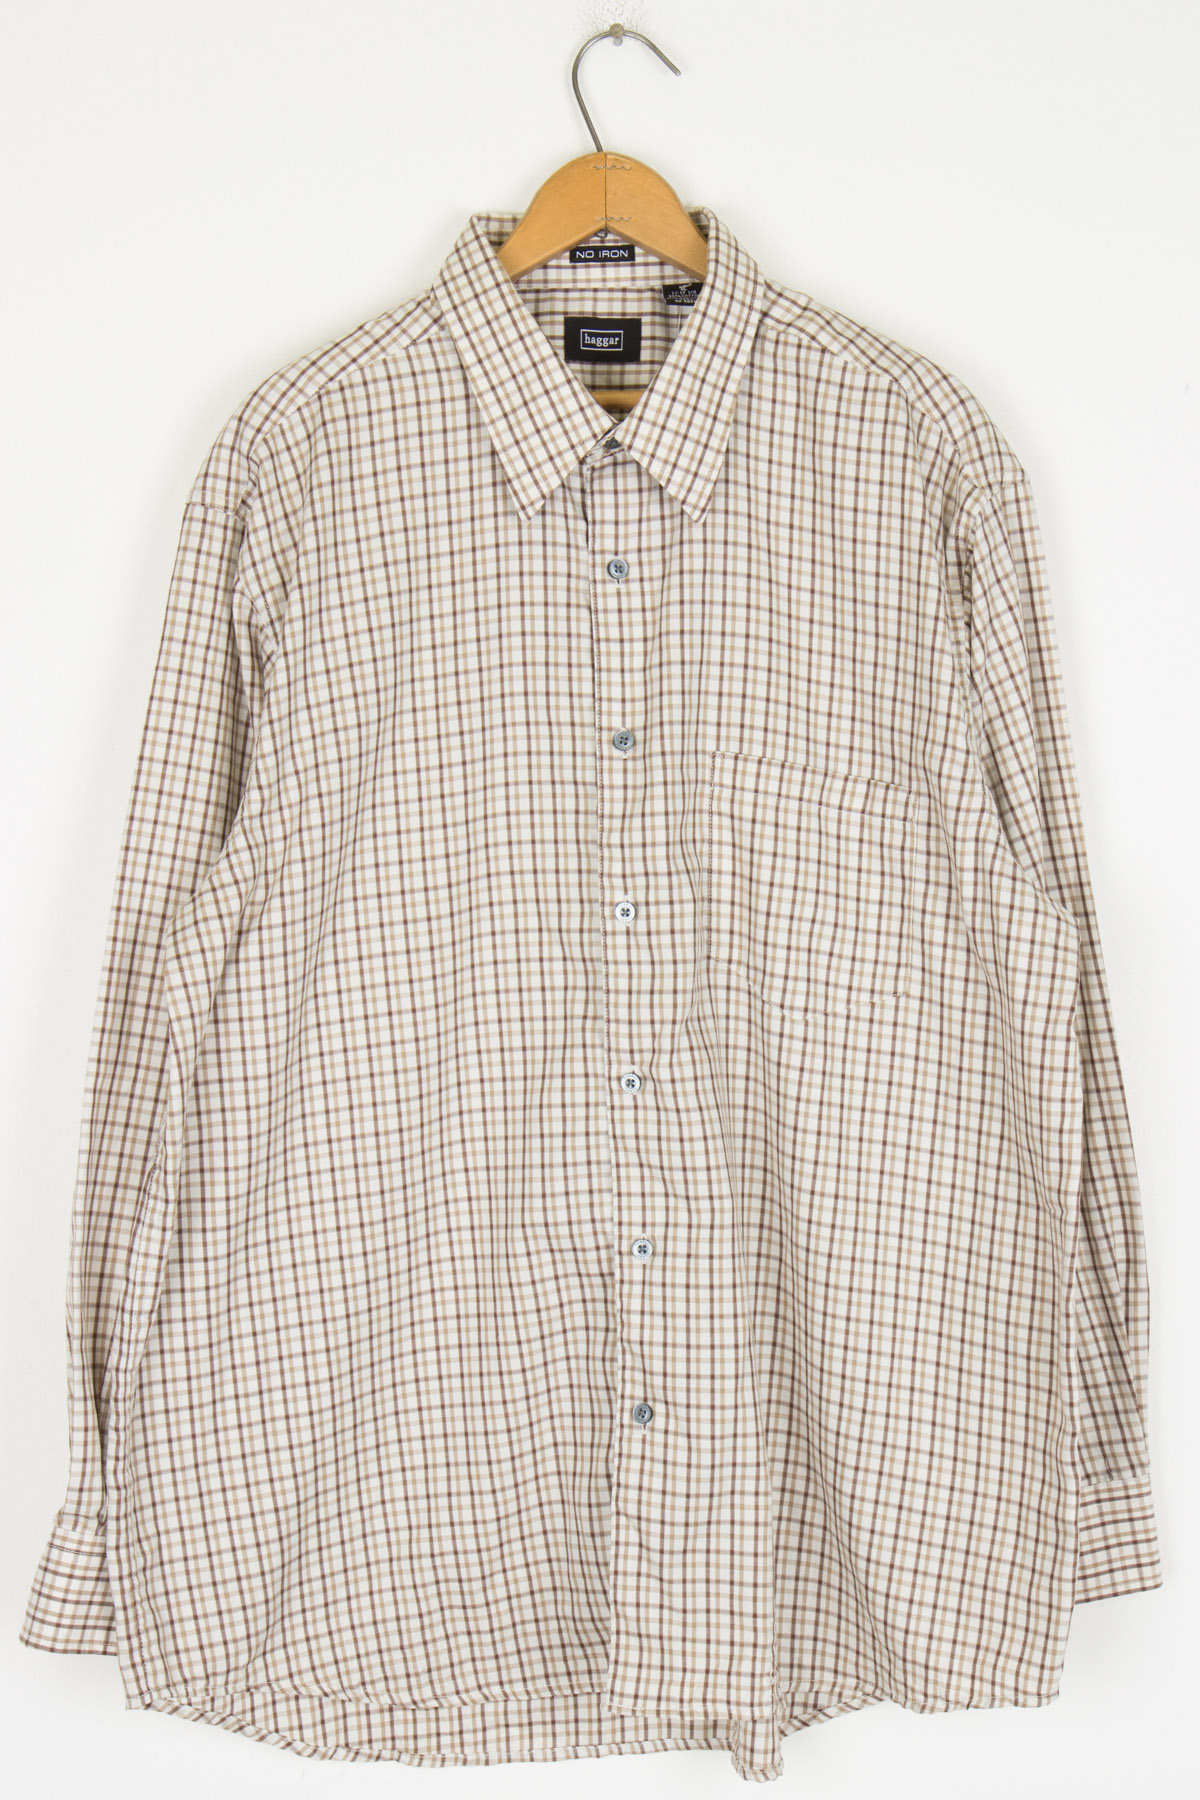 Haggar Bron Plaid